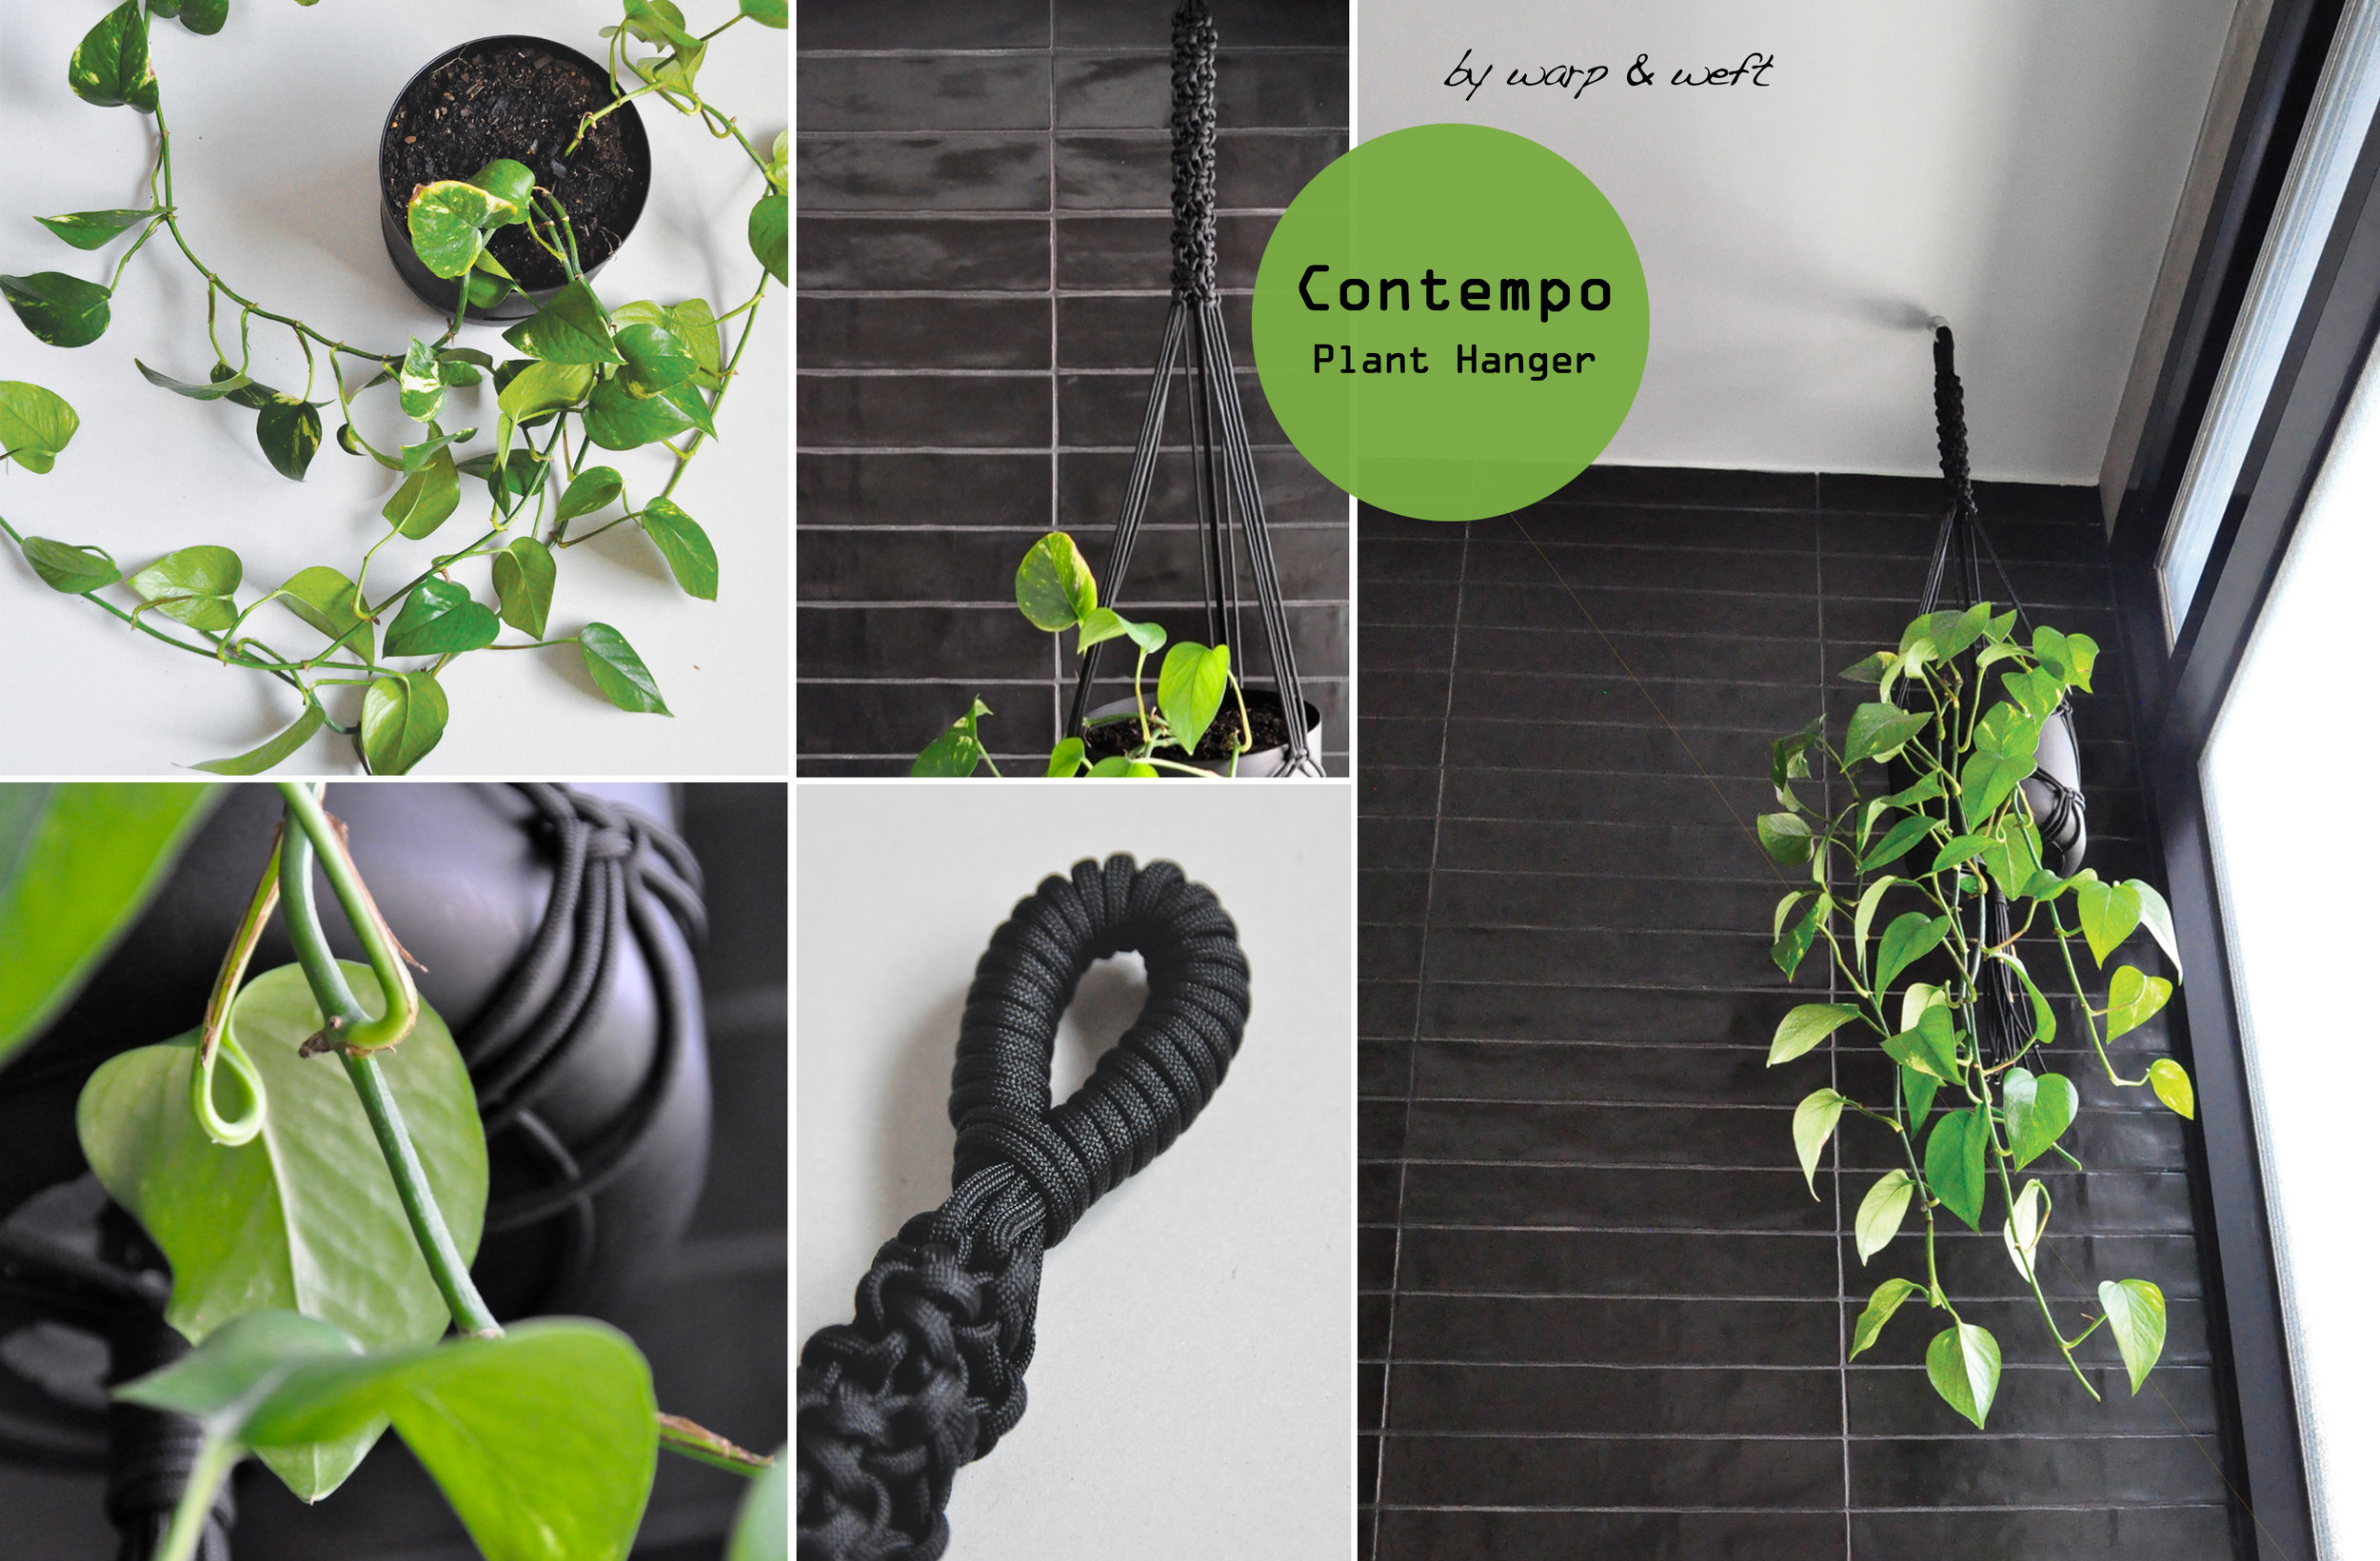 Designed for small spaces in mind. If you are looking to have a garden for your indoor or outdoor space but have very little room, this piece is a great size for you to achieve this. It's a simple macrame plant hanger featuring a funky knot at the top, a wrap knot to create a circle hook for you too hang immediately followed by a alternative knot that repeats to create a tubular texture. It's a cute yet stylish piece for a modern or traditional home.